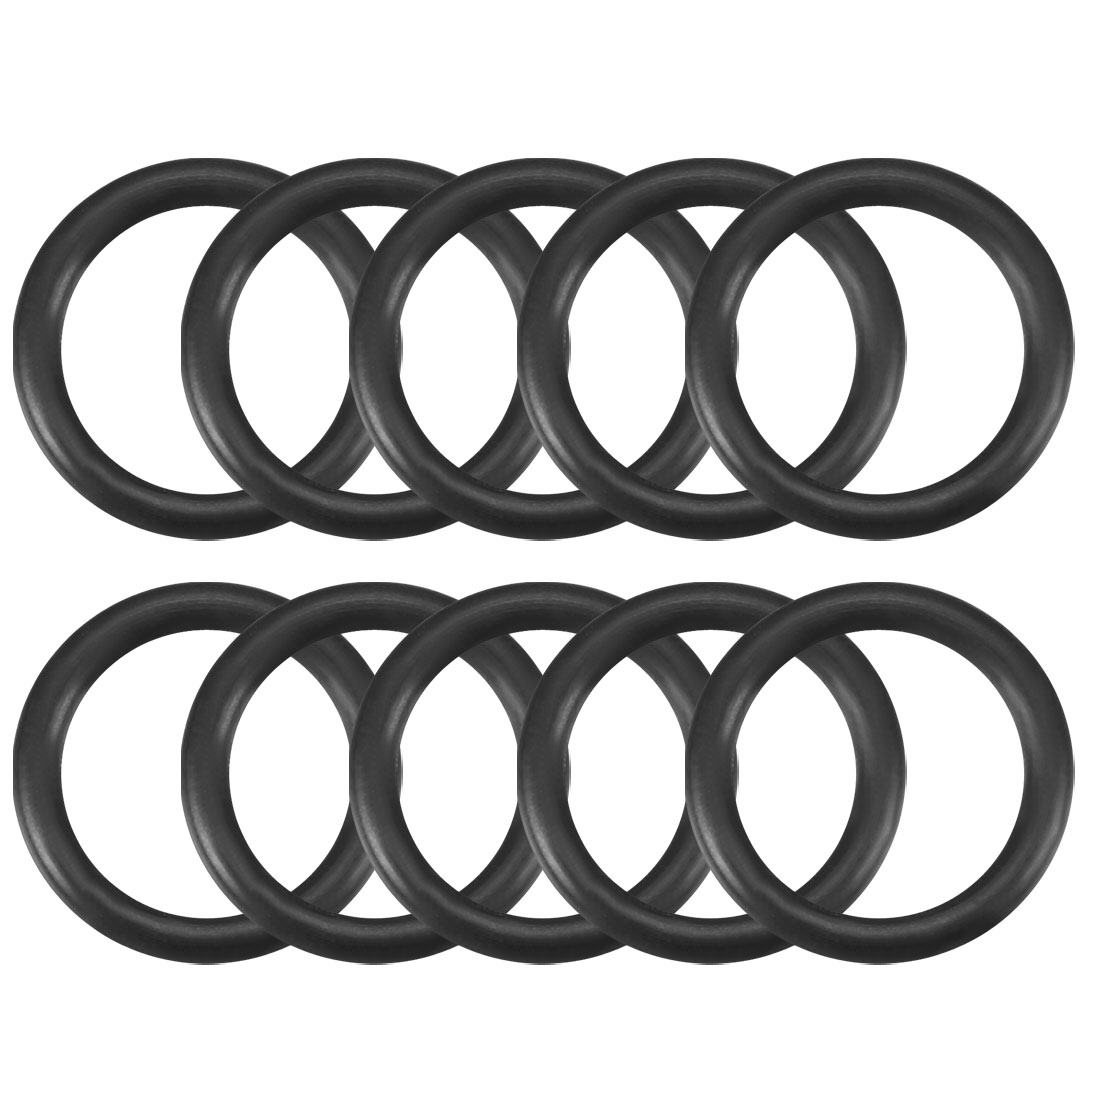 10 Pcs Black Rubber Oil Seal O Ring Sealing Washer 10mm x 1.8mm